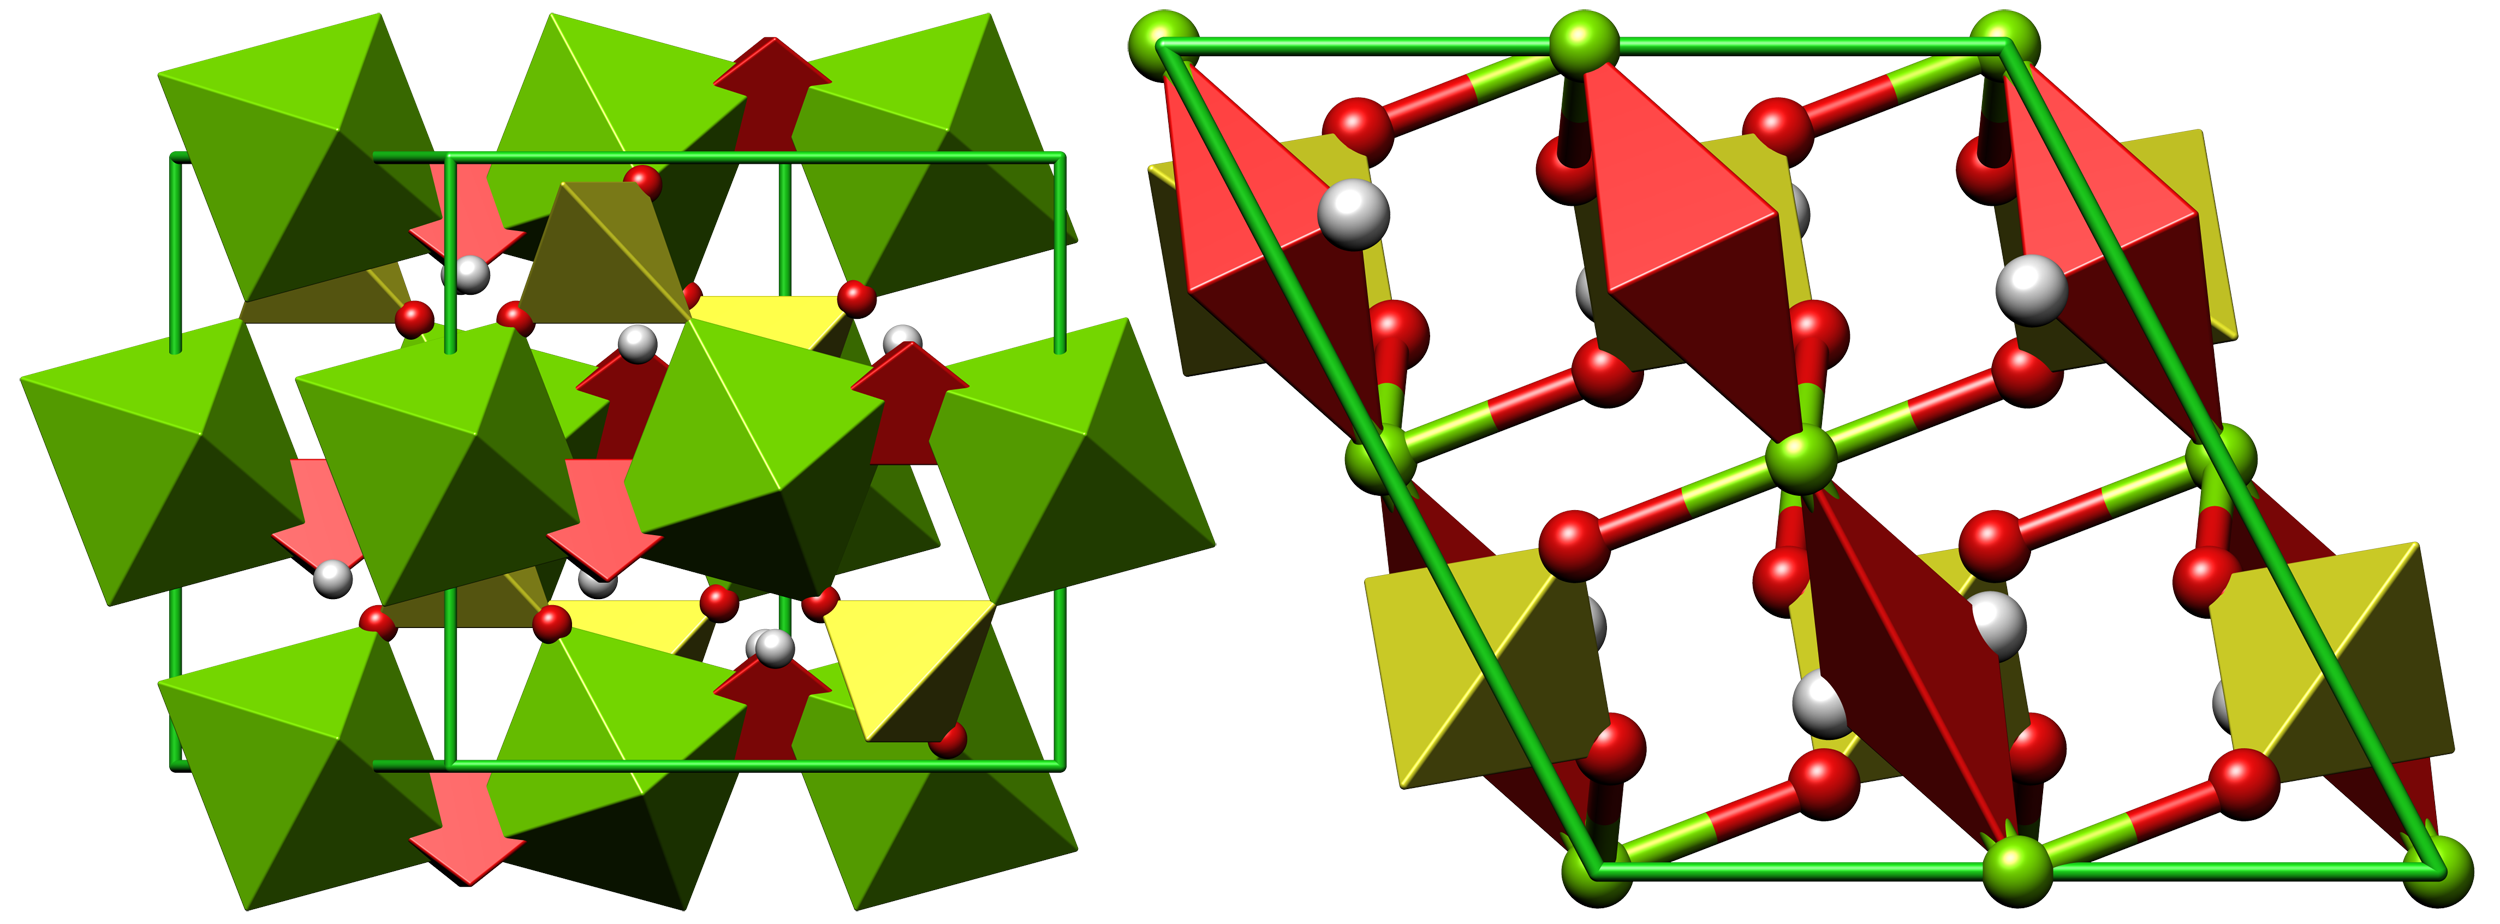 Crystal clipart crystal structure. File kieserite png wikipedia